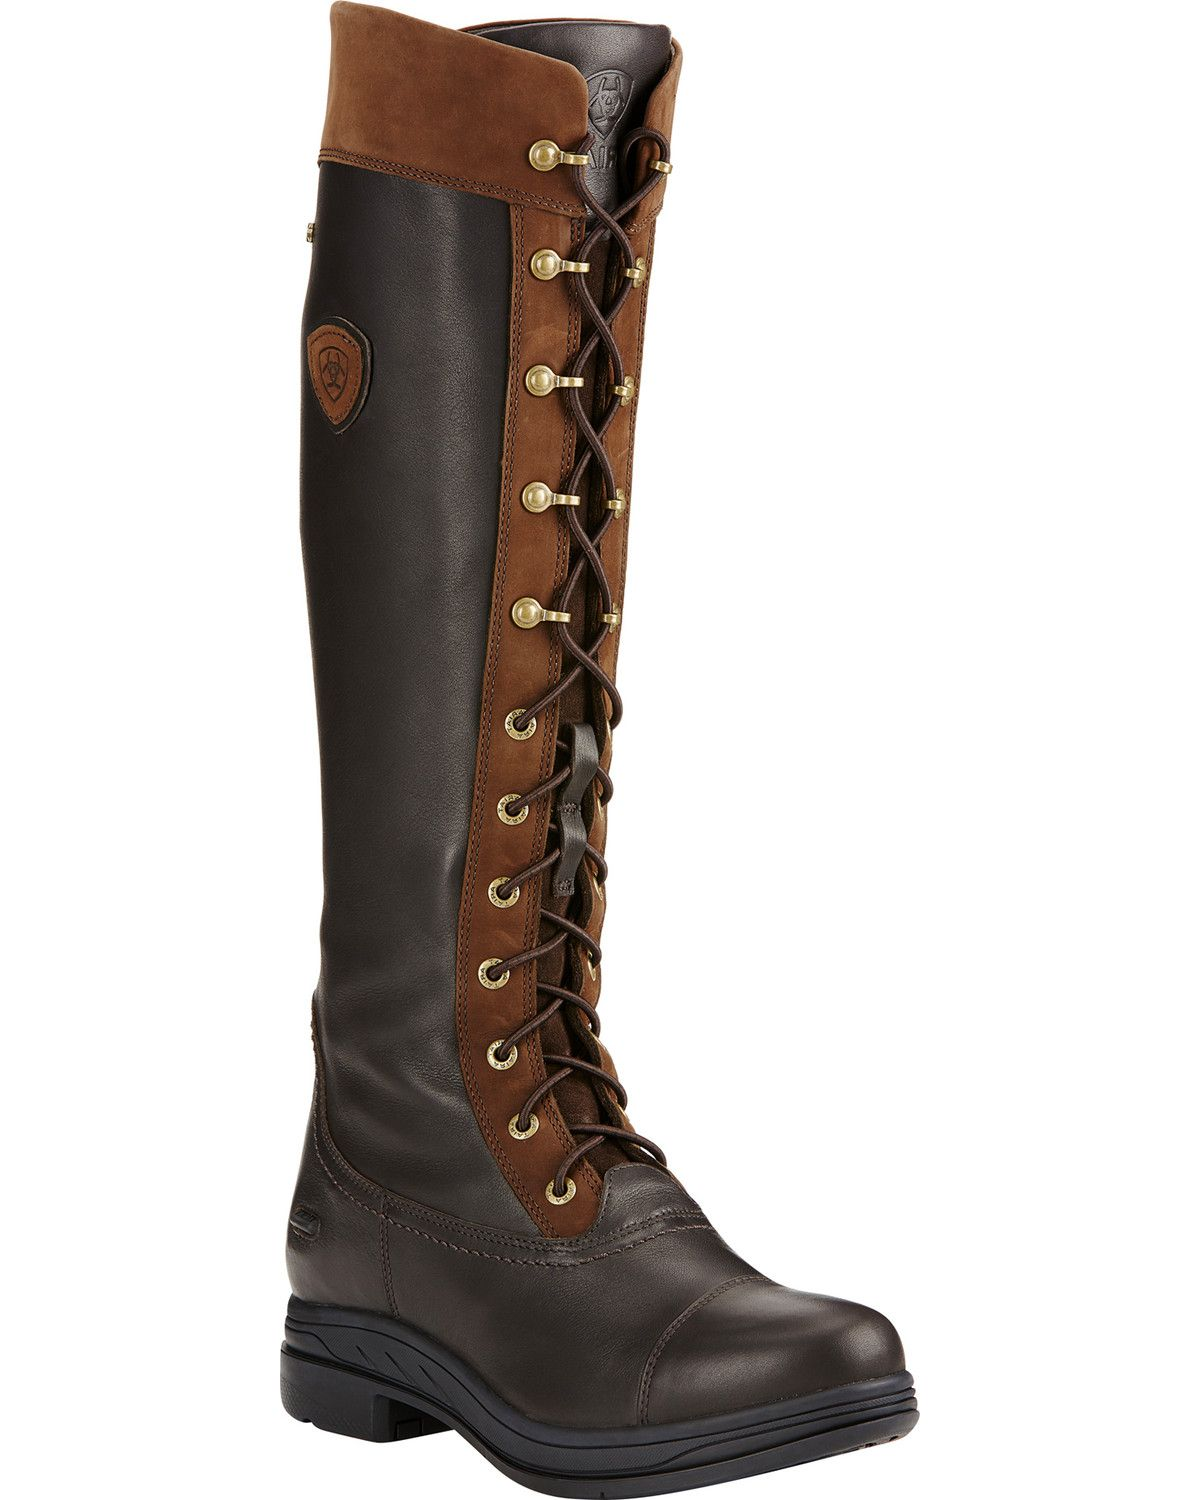 9d6e470afb2 Ariat Women's Coniston Pro GTX Insulated English Boots | Bitten by ...